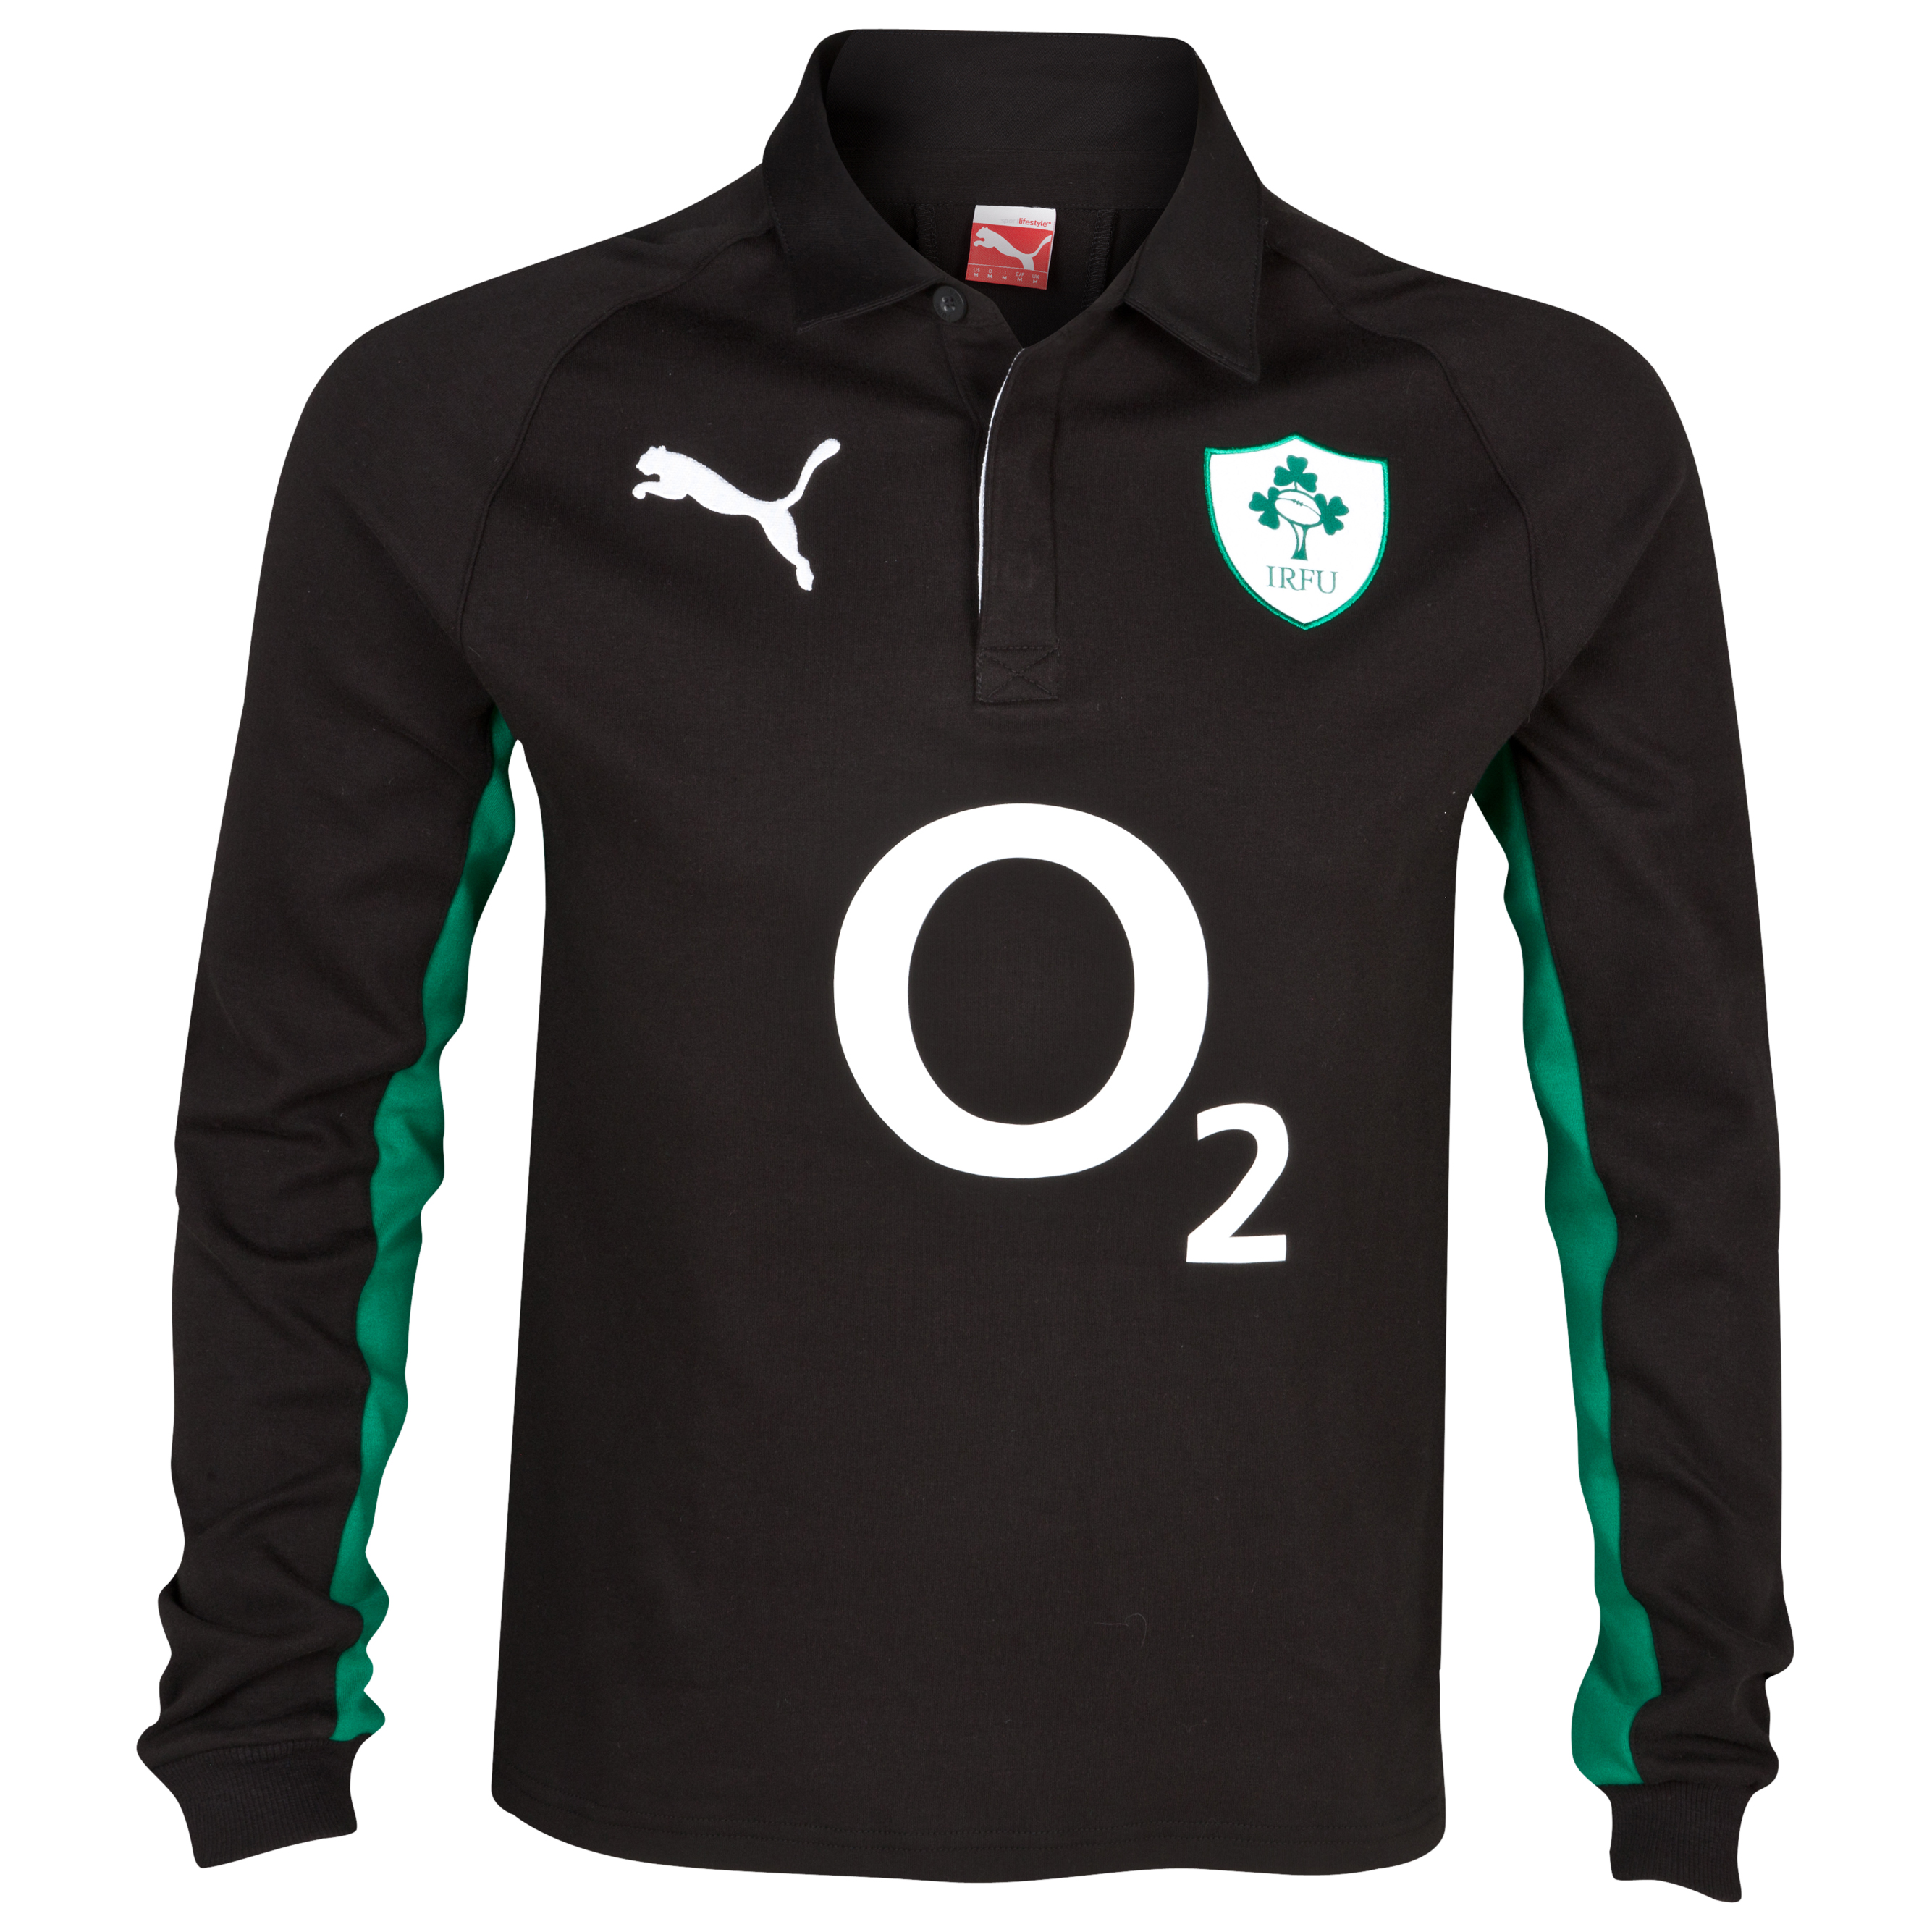 Ireland Rugby Alternative Shirt 2012/13 - Long Sleeve